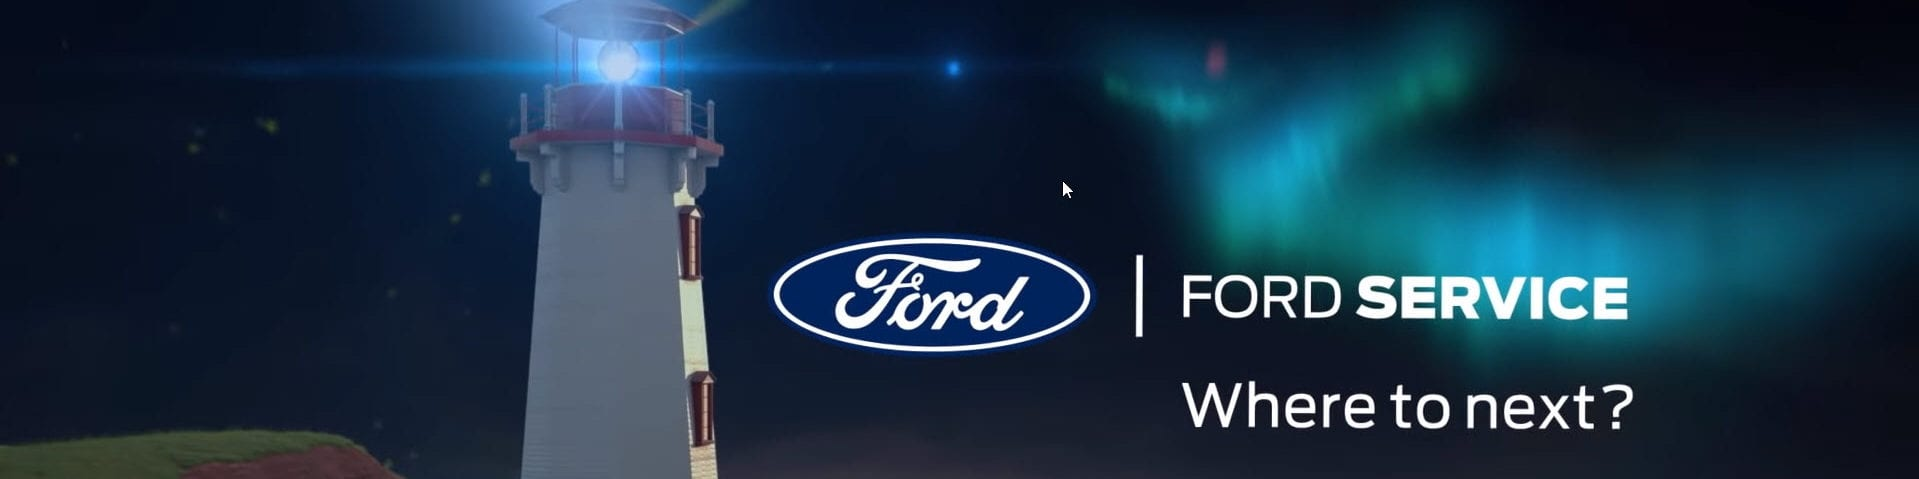 ford-service-where-to-next